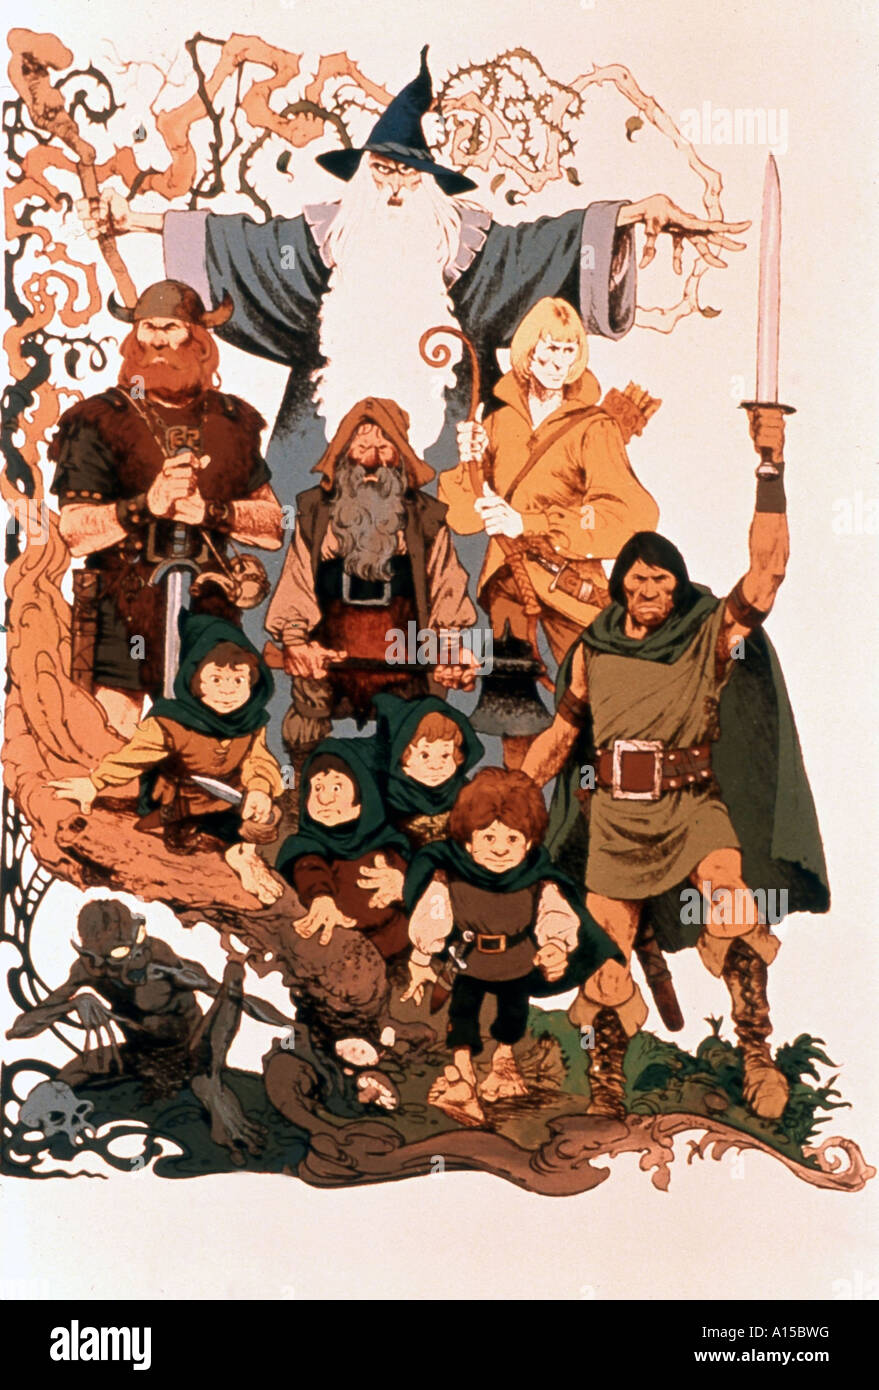 Lord Of The Ring Cartoon